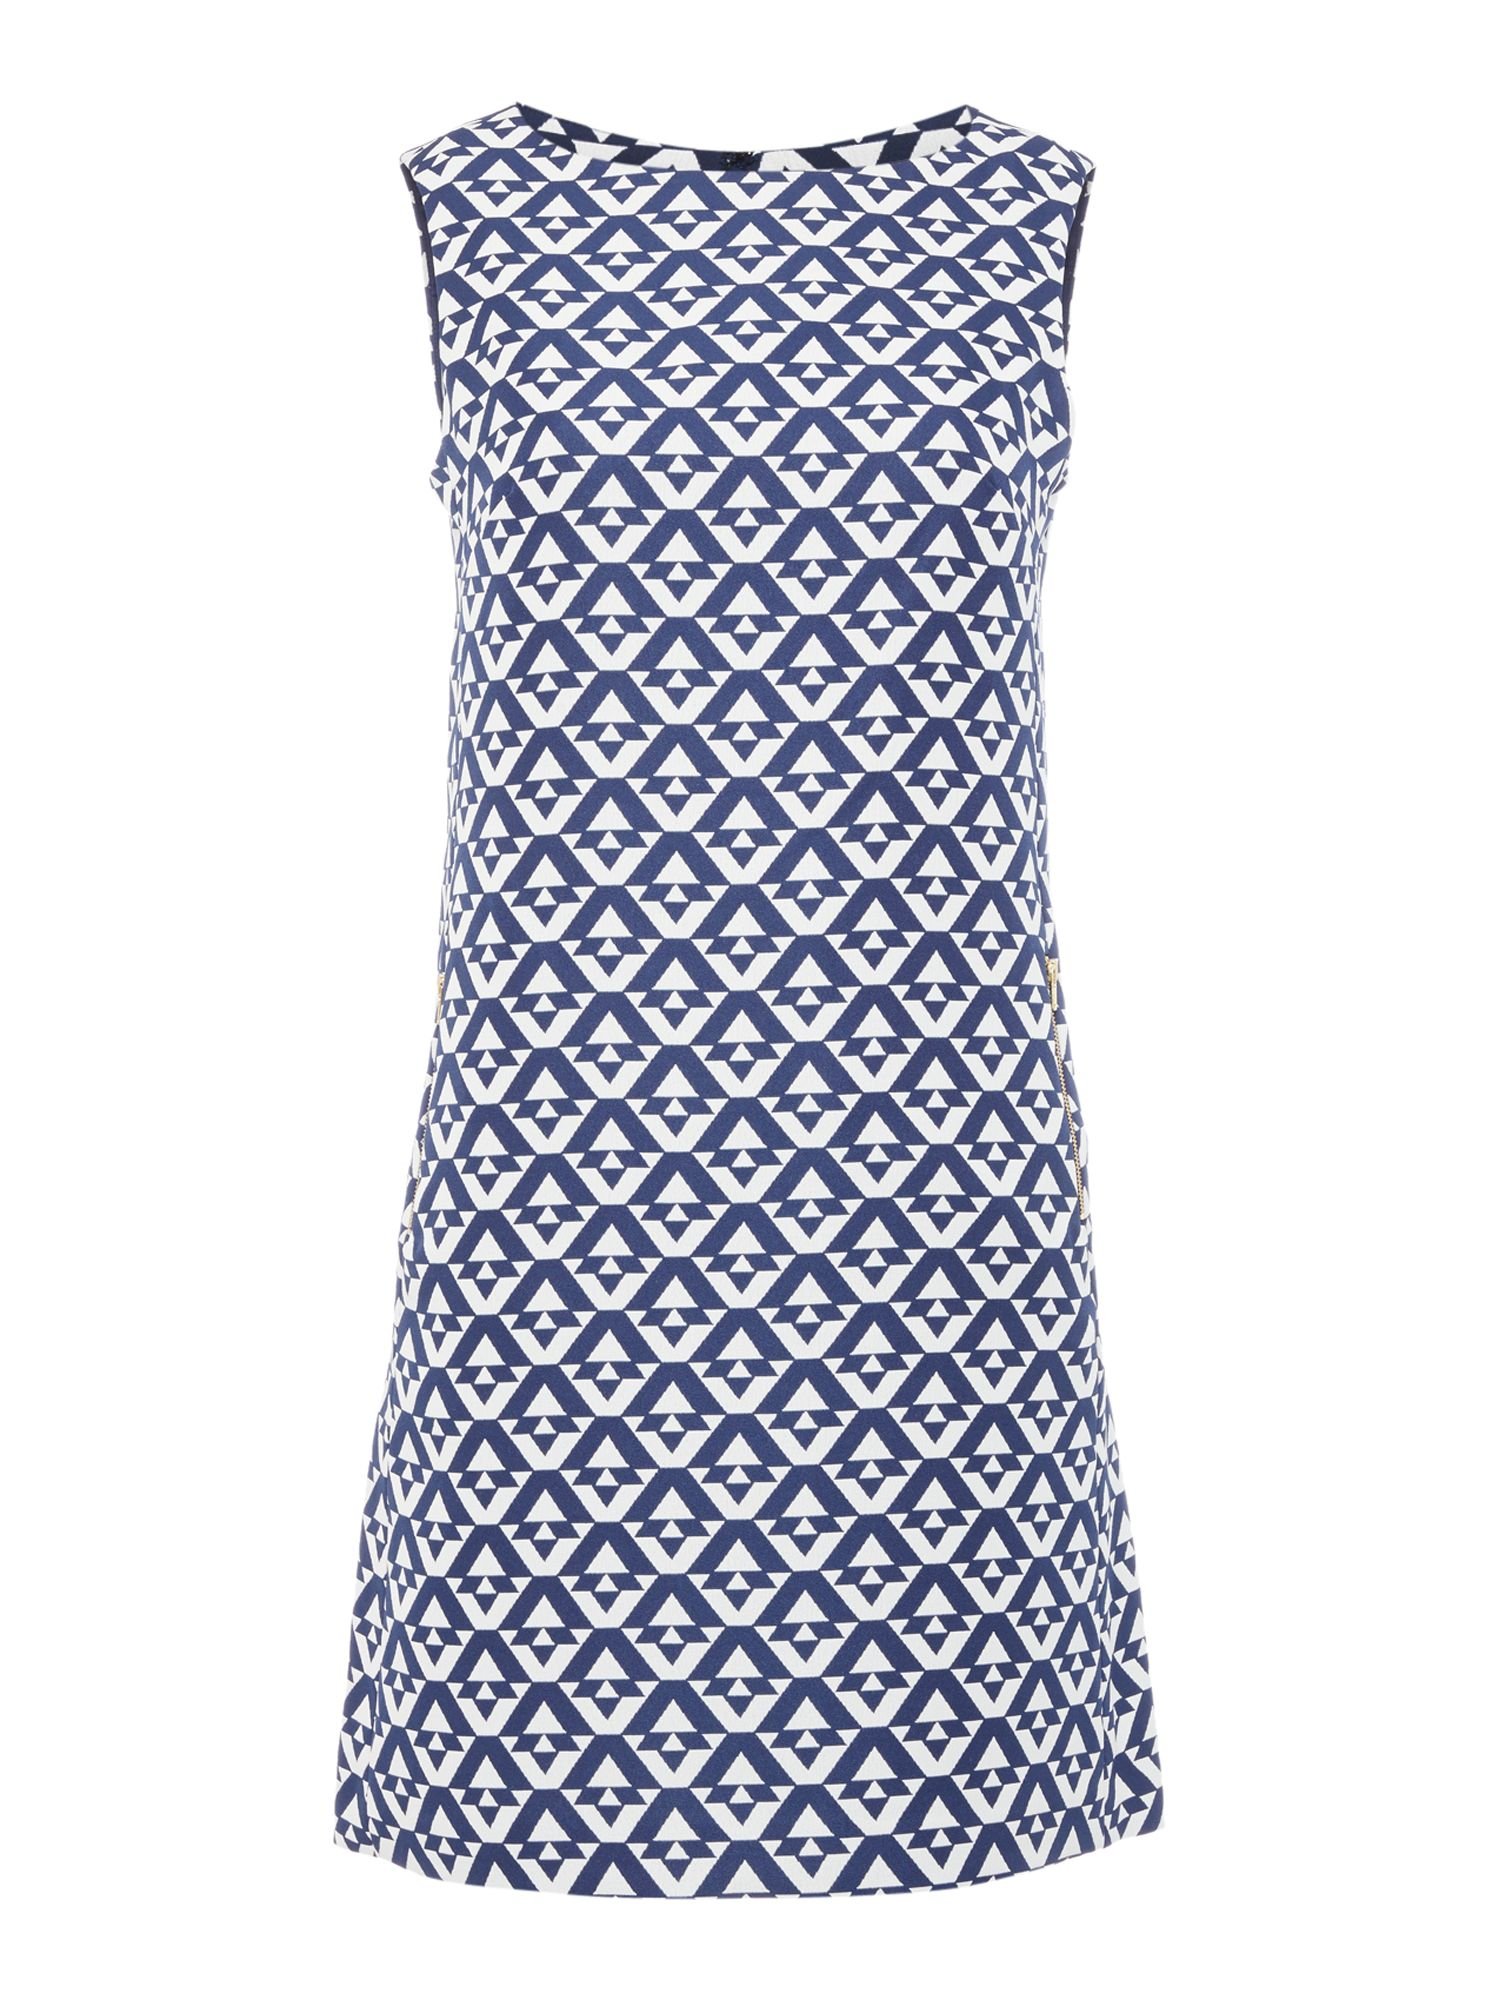 Tahari ASL Geometric Print Tunic Dress, Blue